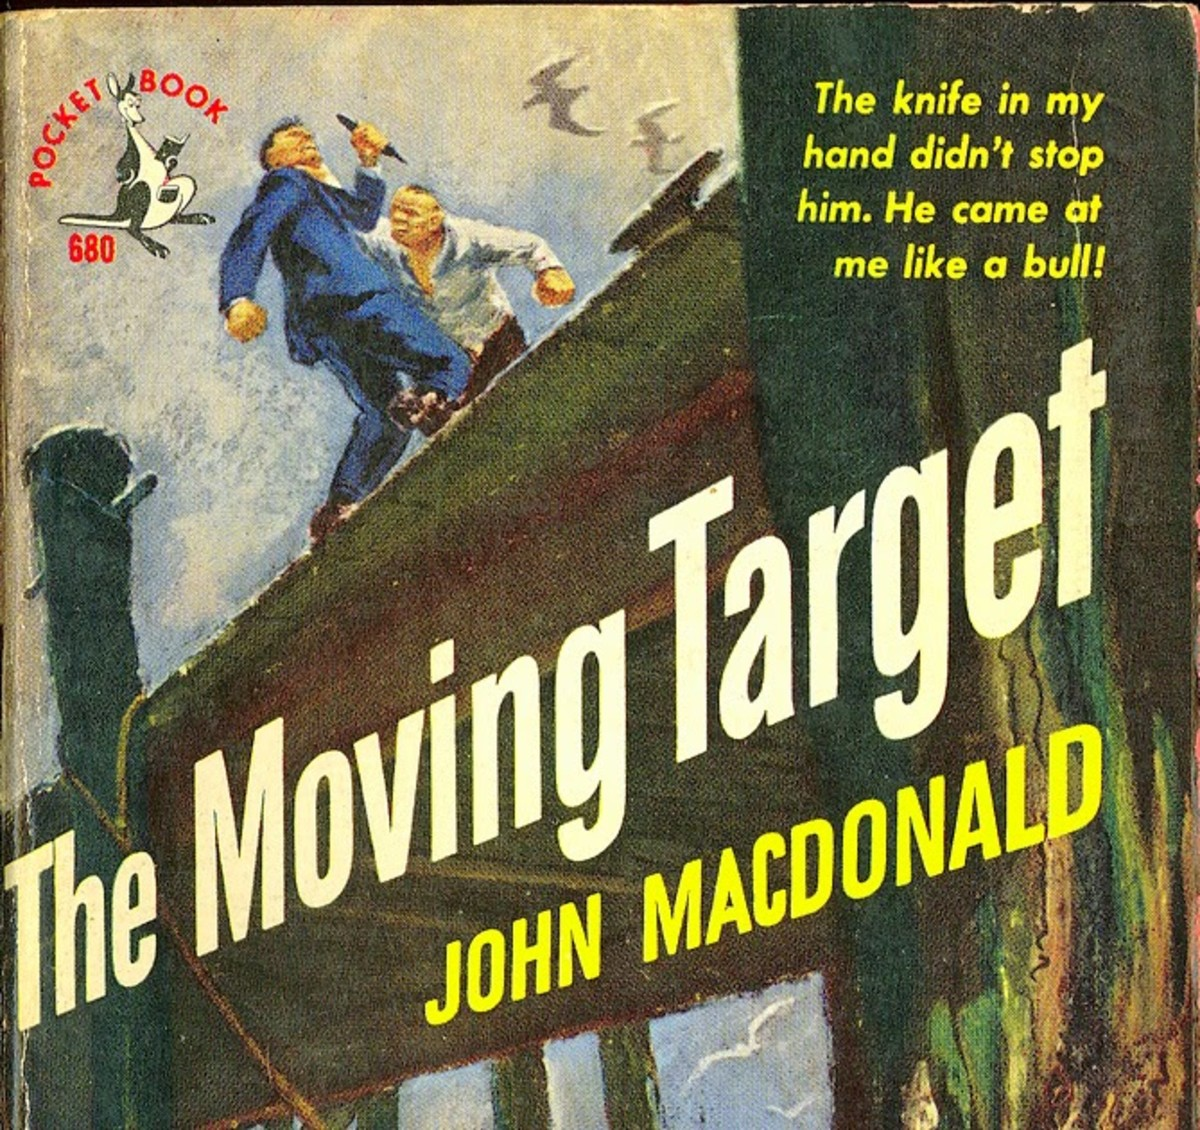 Detail from the cover of an earlier edition of The Moving Target.